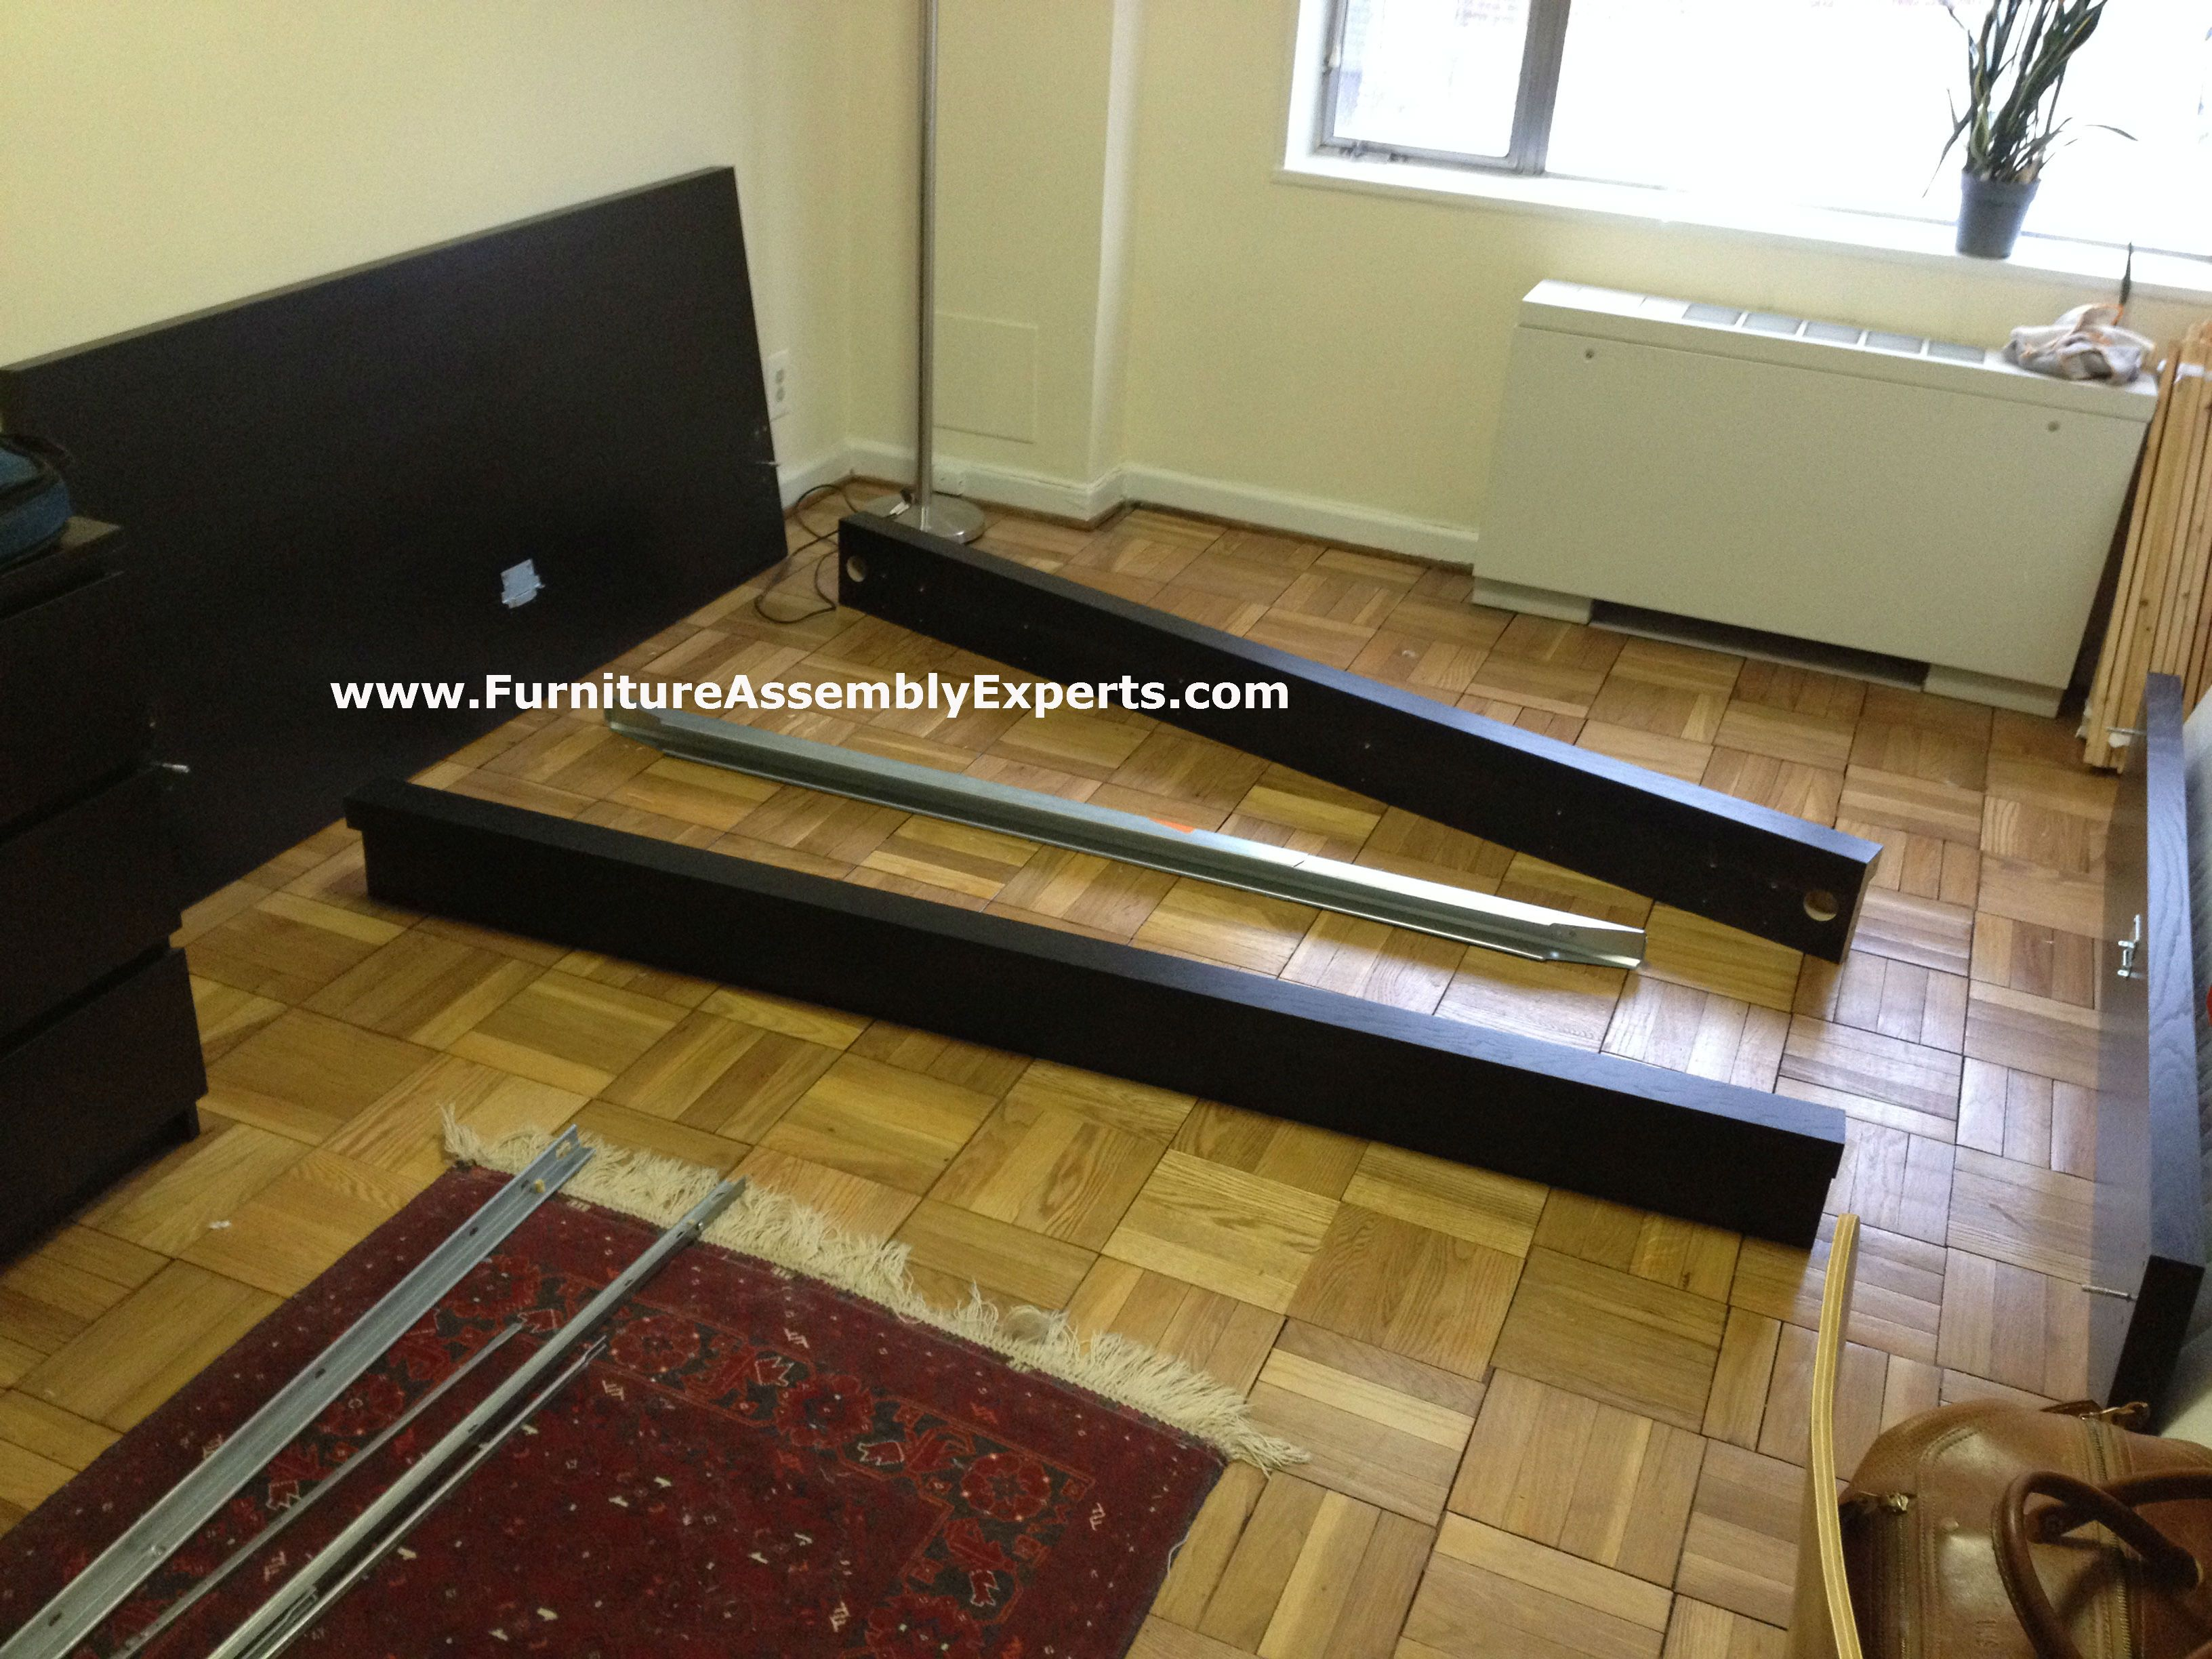 Ikea Malm Bed Disassembled In Baltimore Md By Furniture Assembly